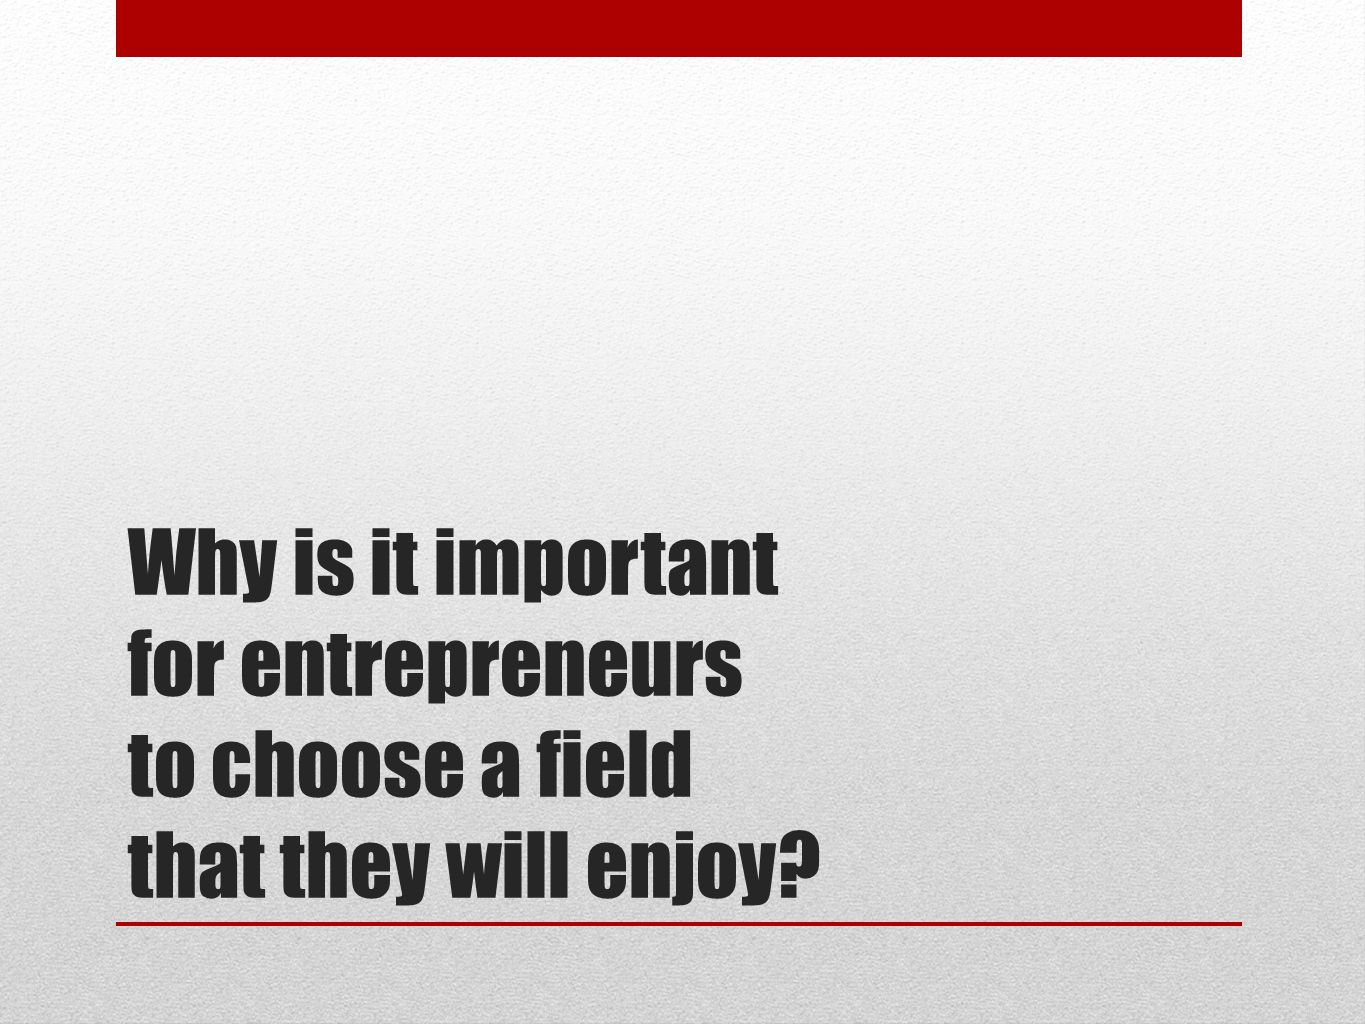 Why is it important for entrepreneurs to choose a field that they will enjoy